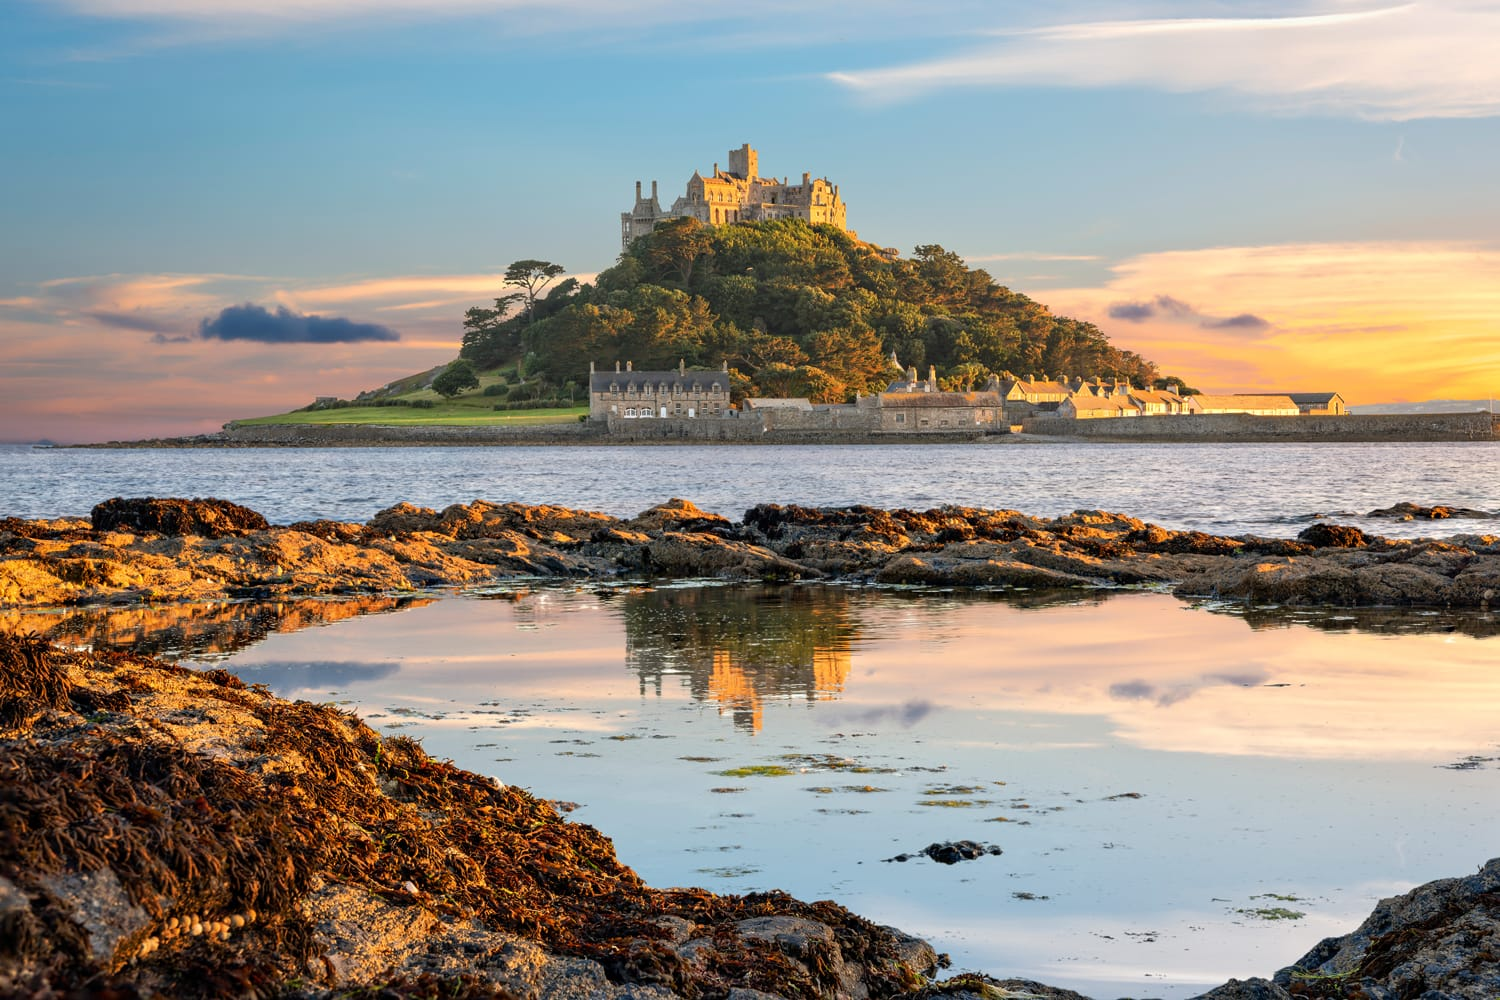 View of St Michael's Mount in Cornwall at sunset